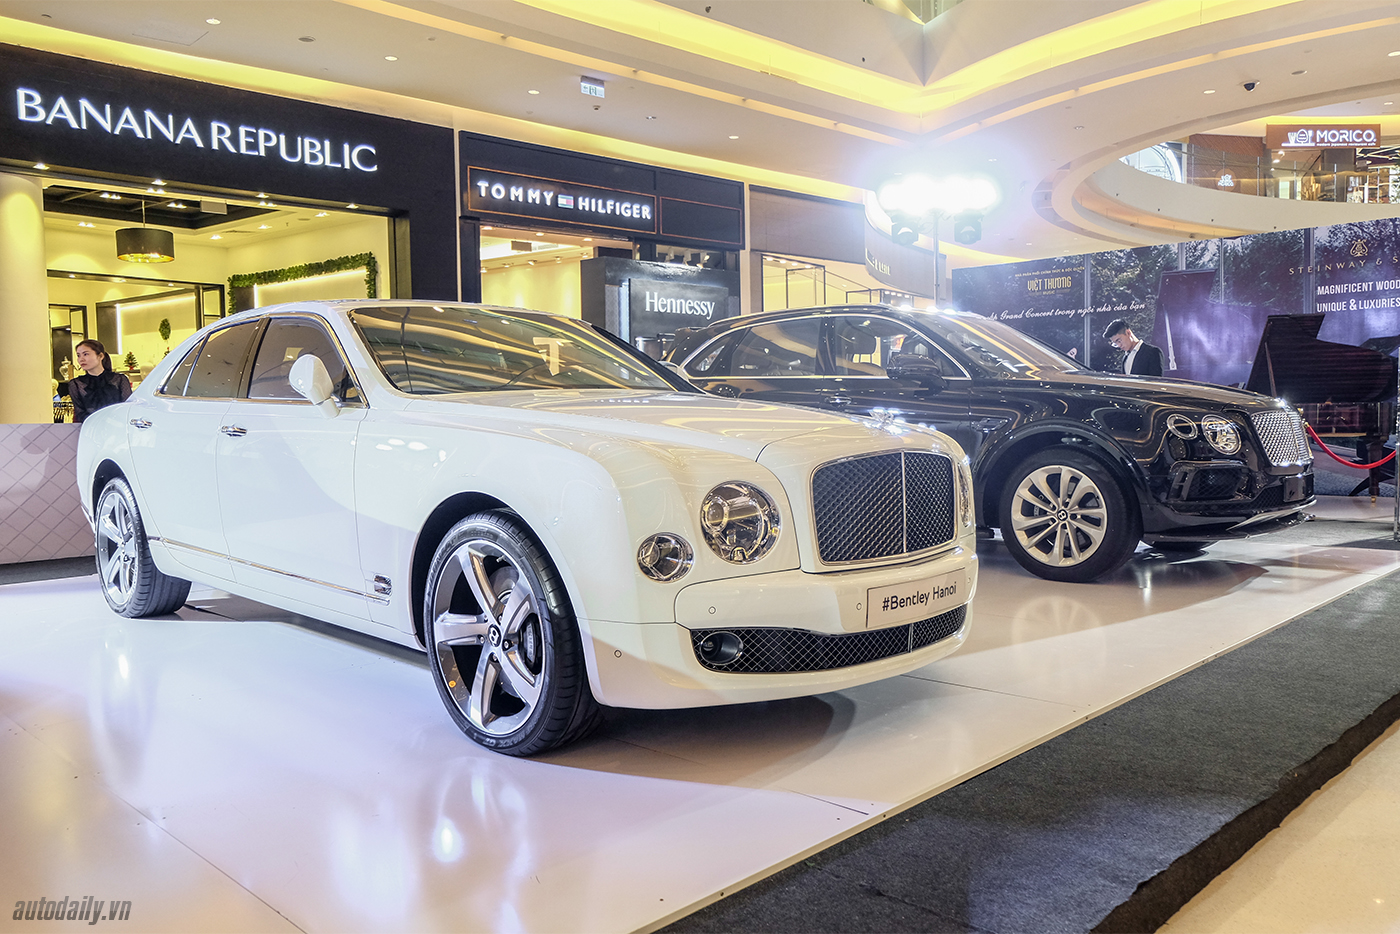 bentley-be-extraordinary-tour-4.jpg